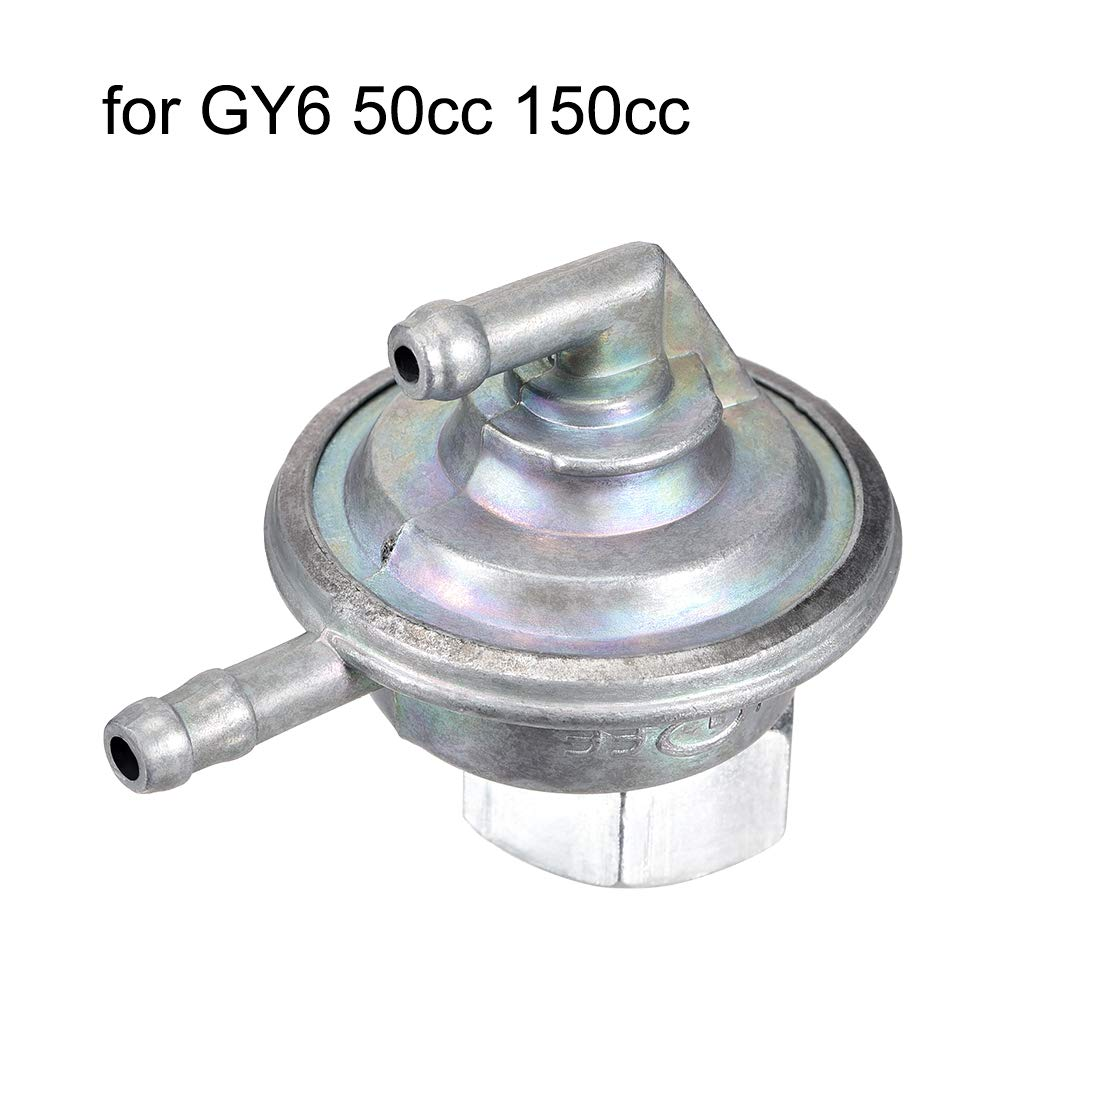 uxcell Gas Fuel Switch Pump Valve Petcock for GY6 50cc 150cc 2pcs